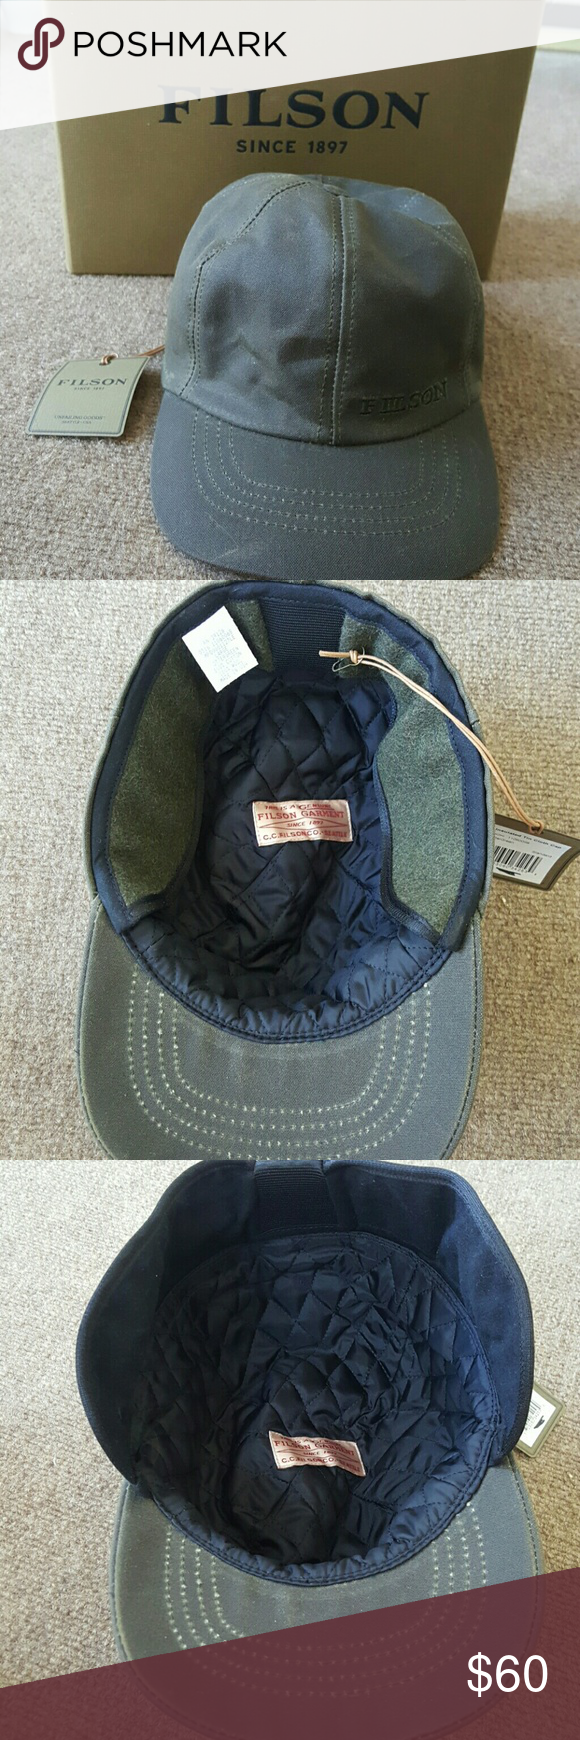 447c03cf46a0 NWT insulated tin cloth cap Brand new Filson hat with box and tags. This is